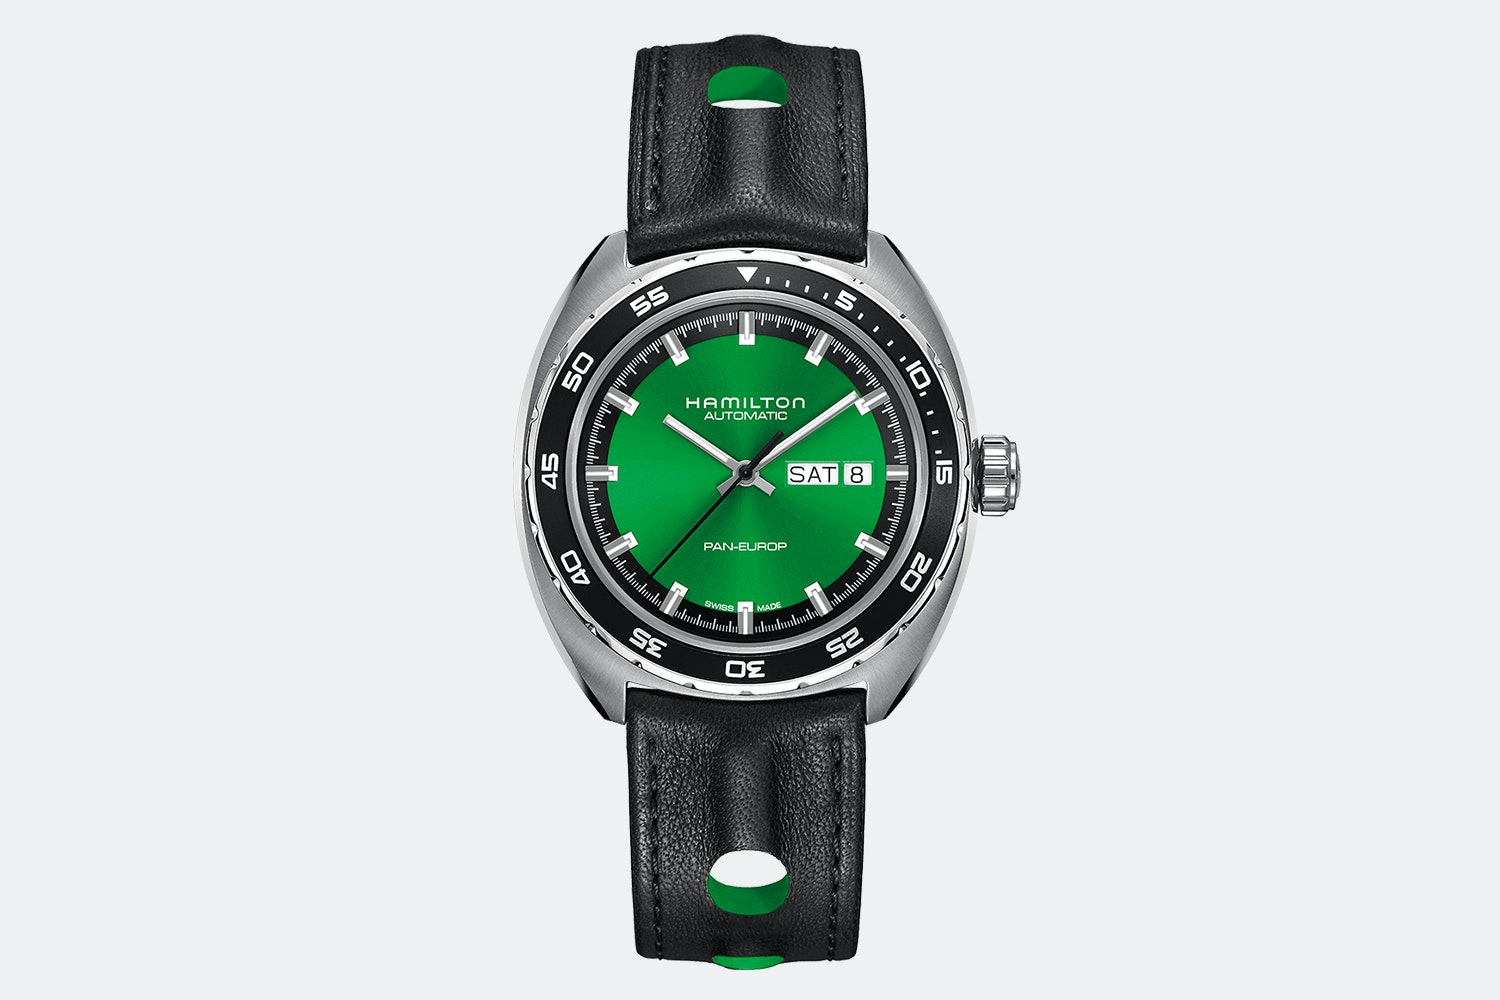 H35415761 - Green Dial, Black Leather Strap